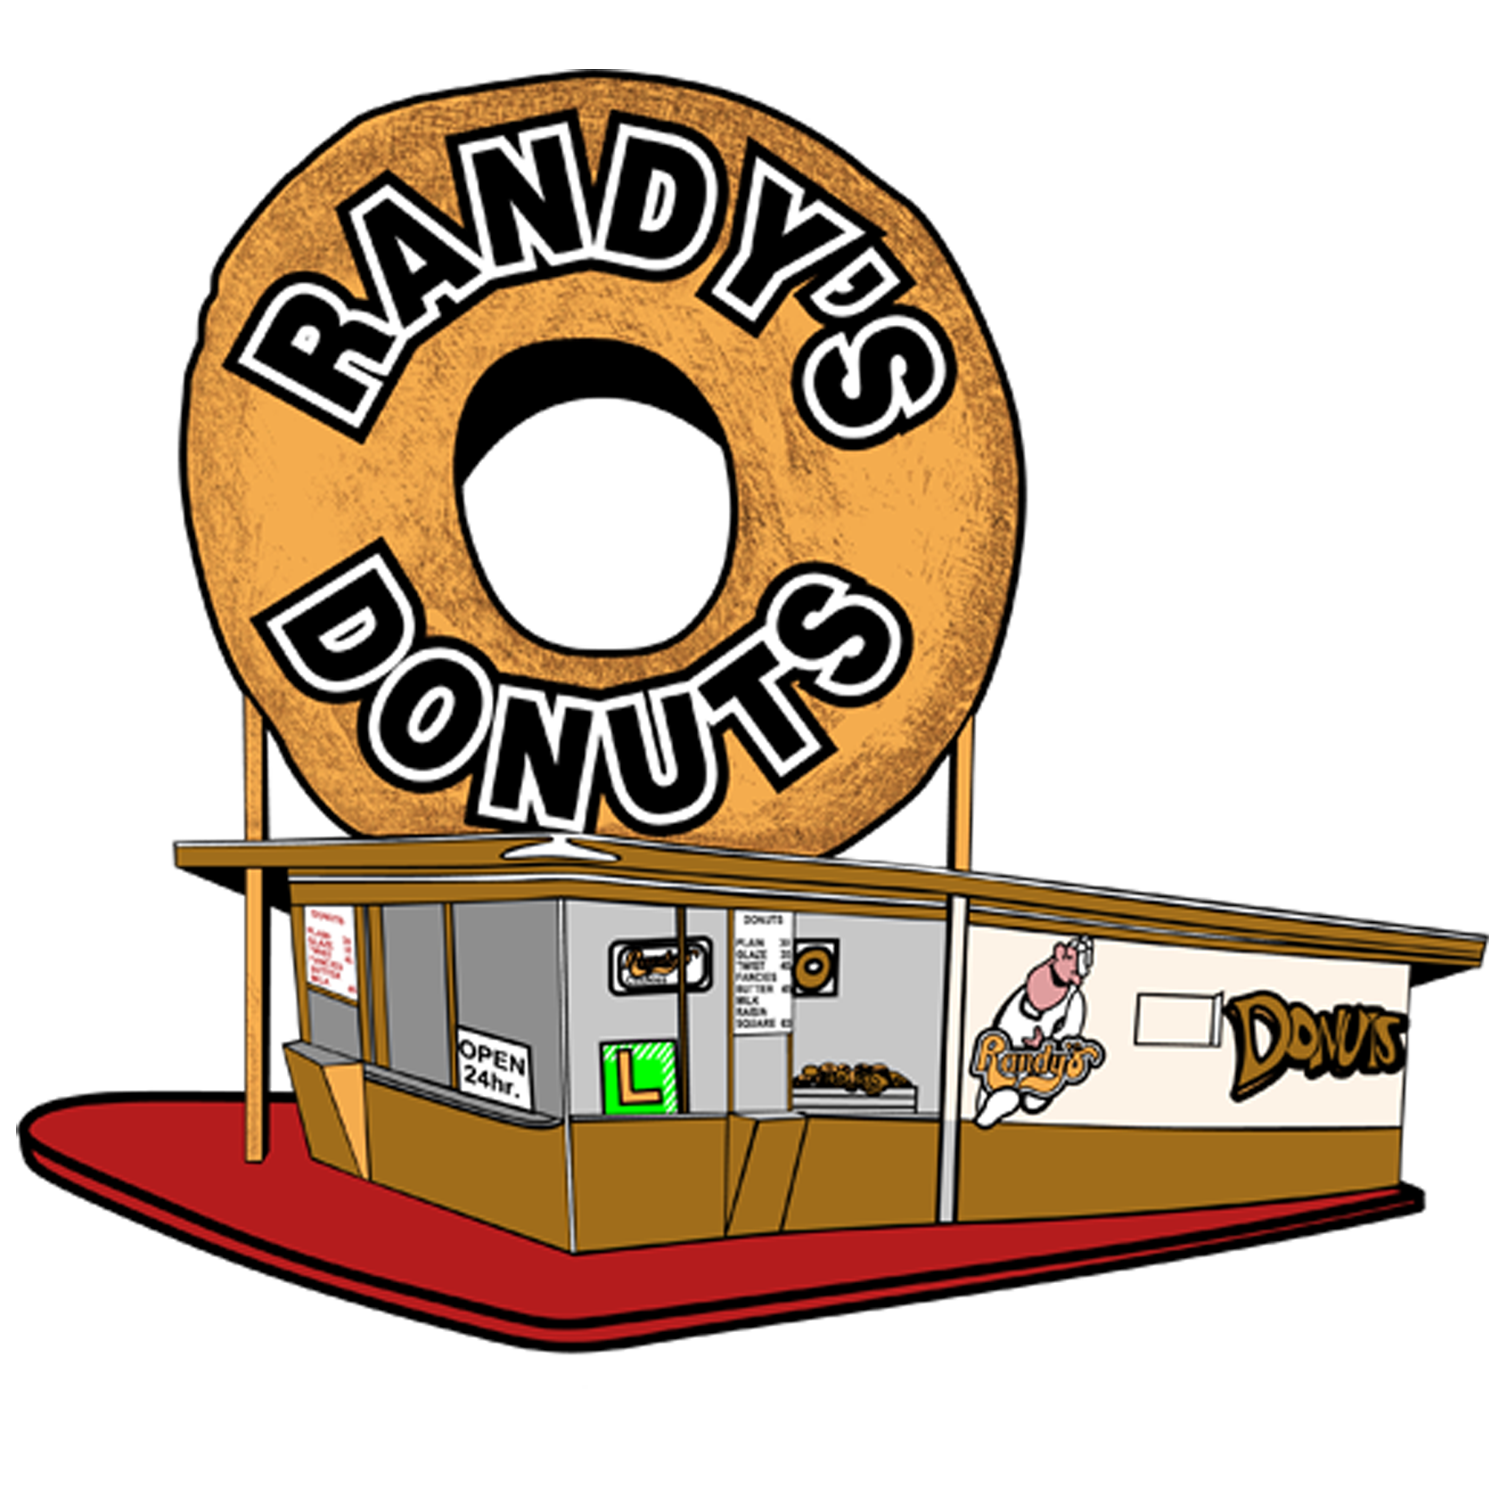 Christmas donut clipart image library stock Randy's Donuts image library stock